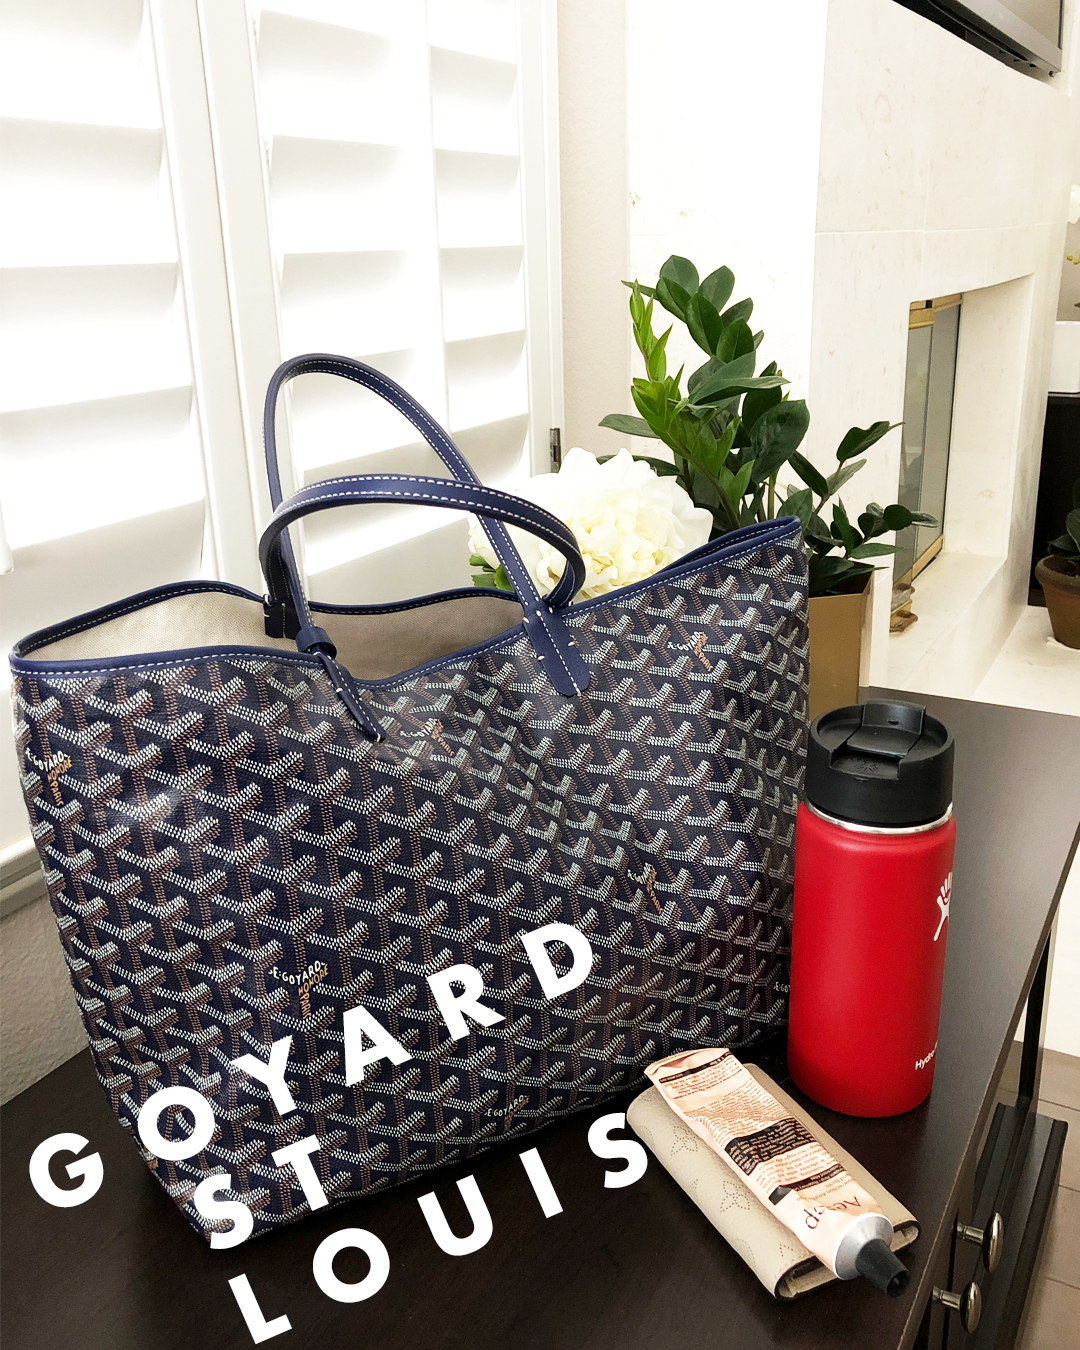 goyard st louis review.png